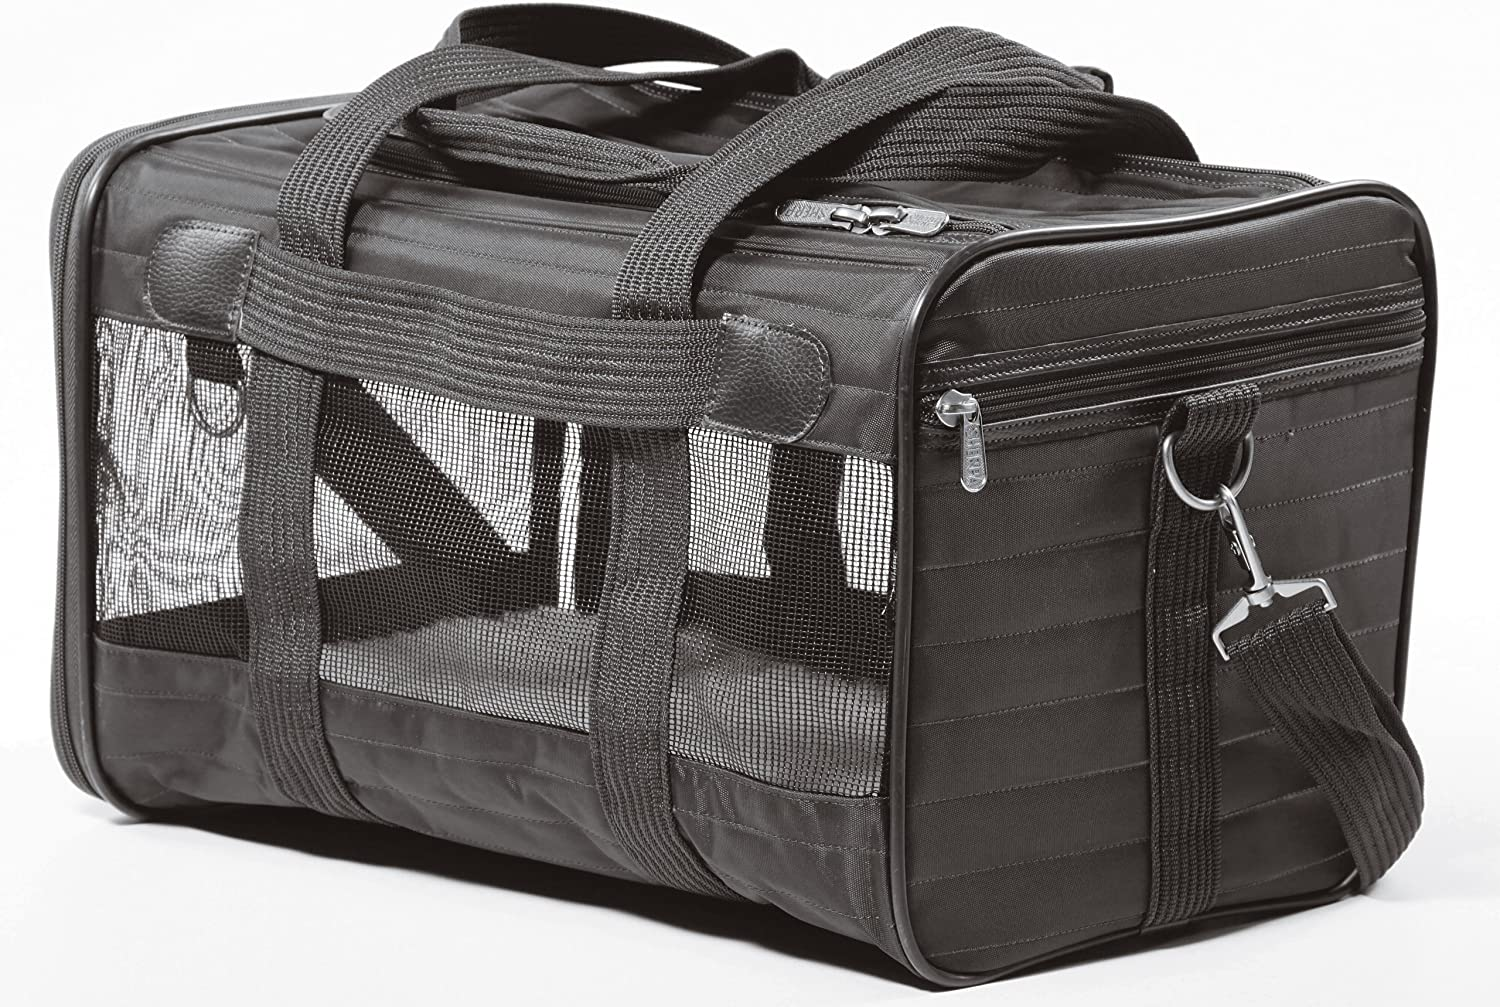 Sherpa Deluxe Pet Carriers : Pet Carrier Duffle Bags : Pet Supplies